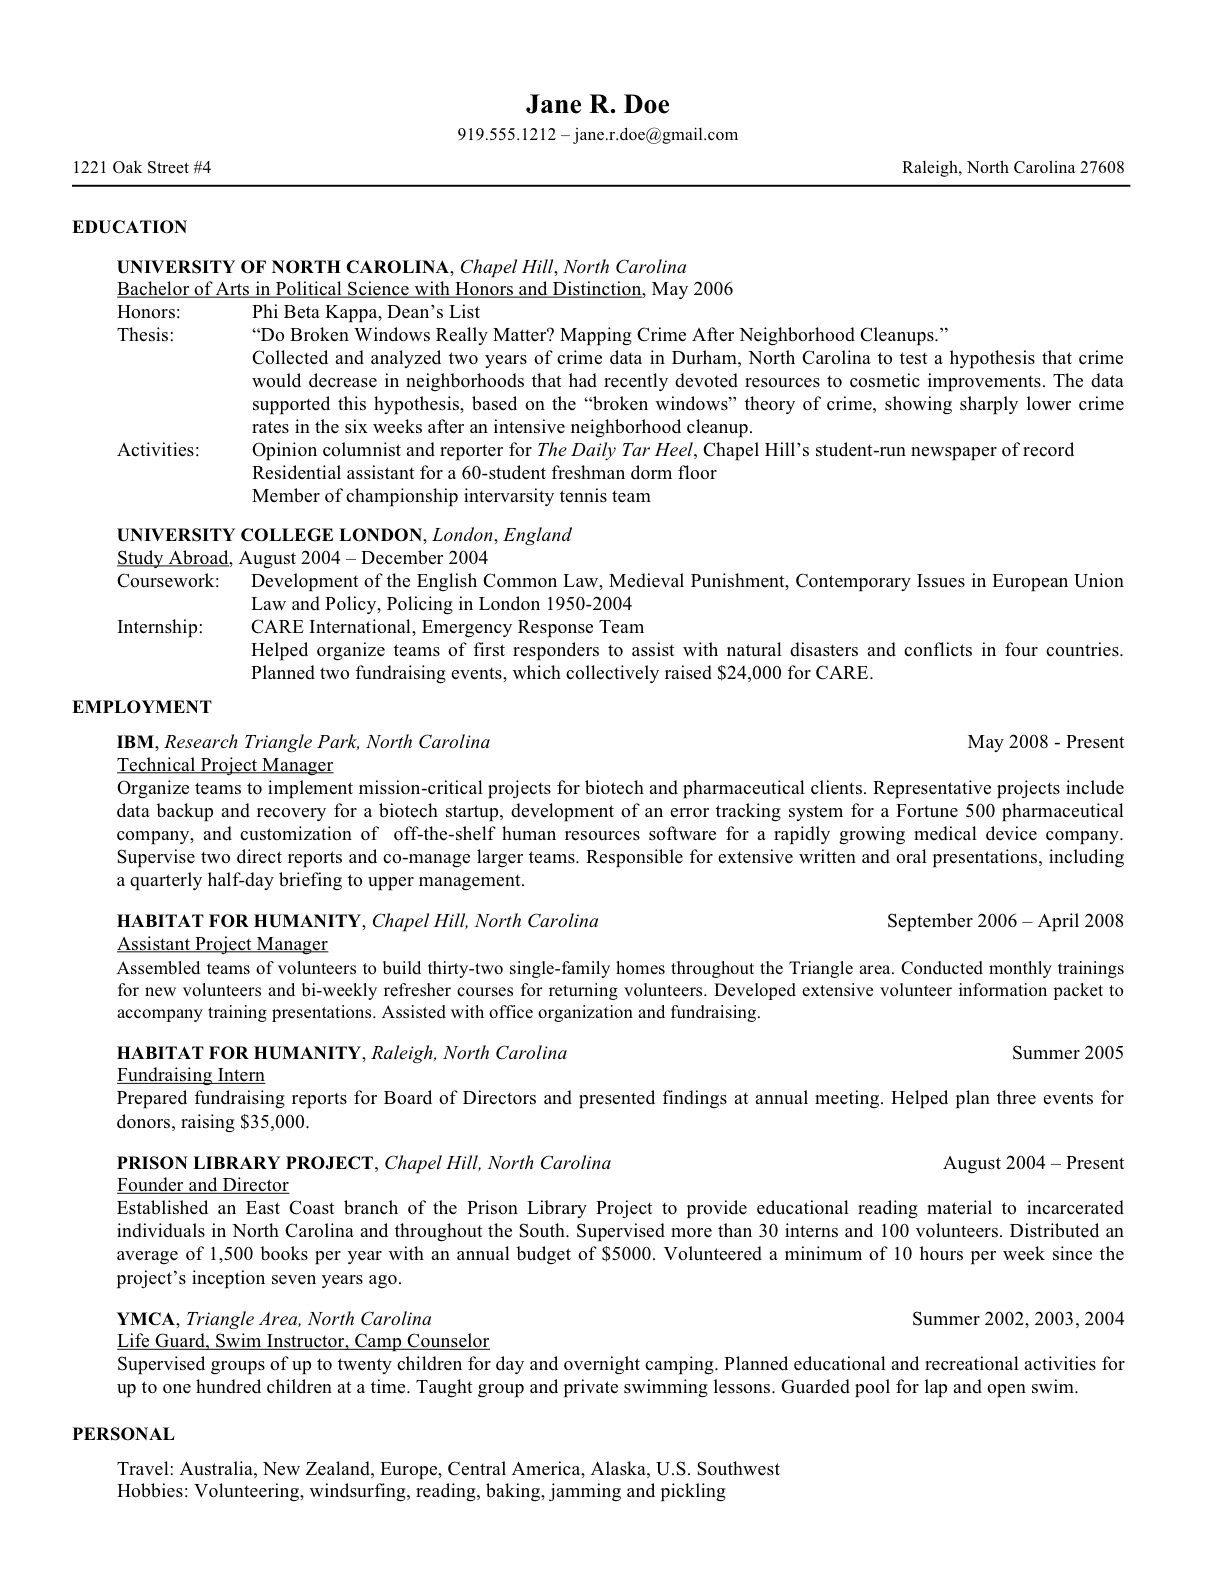 law school resume templates prepping your for of university at education template finance Resume Education Resume Template